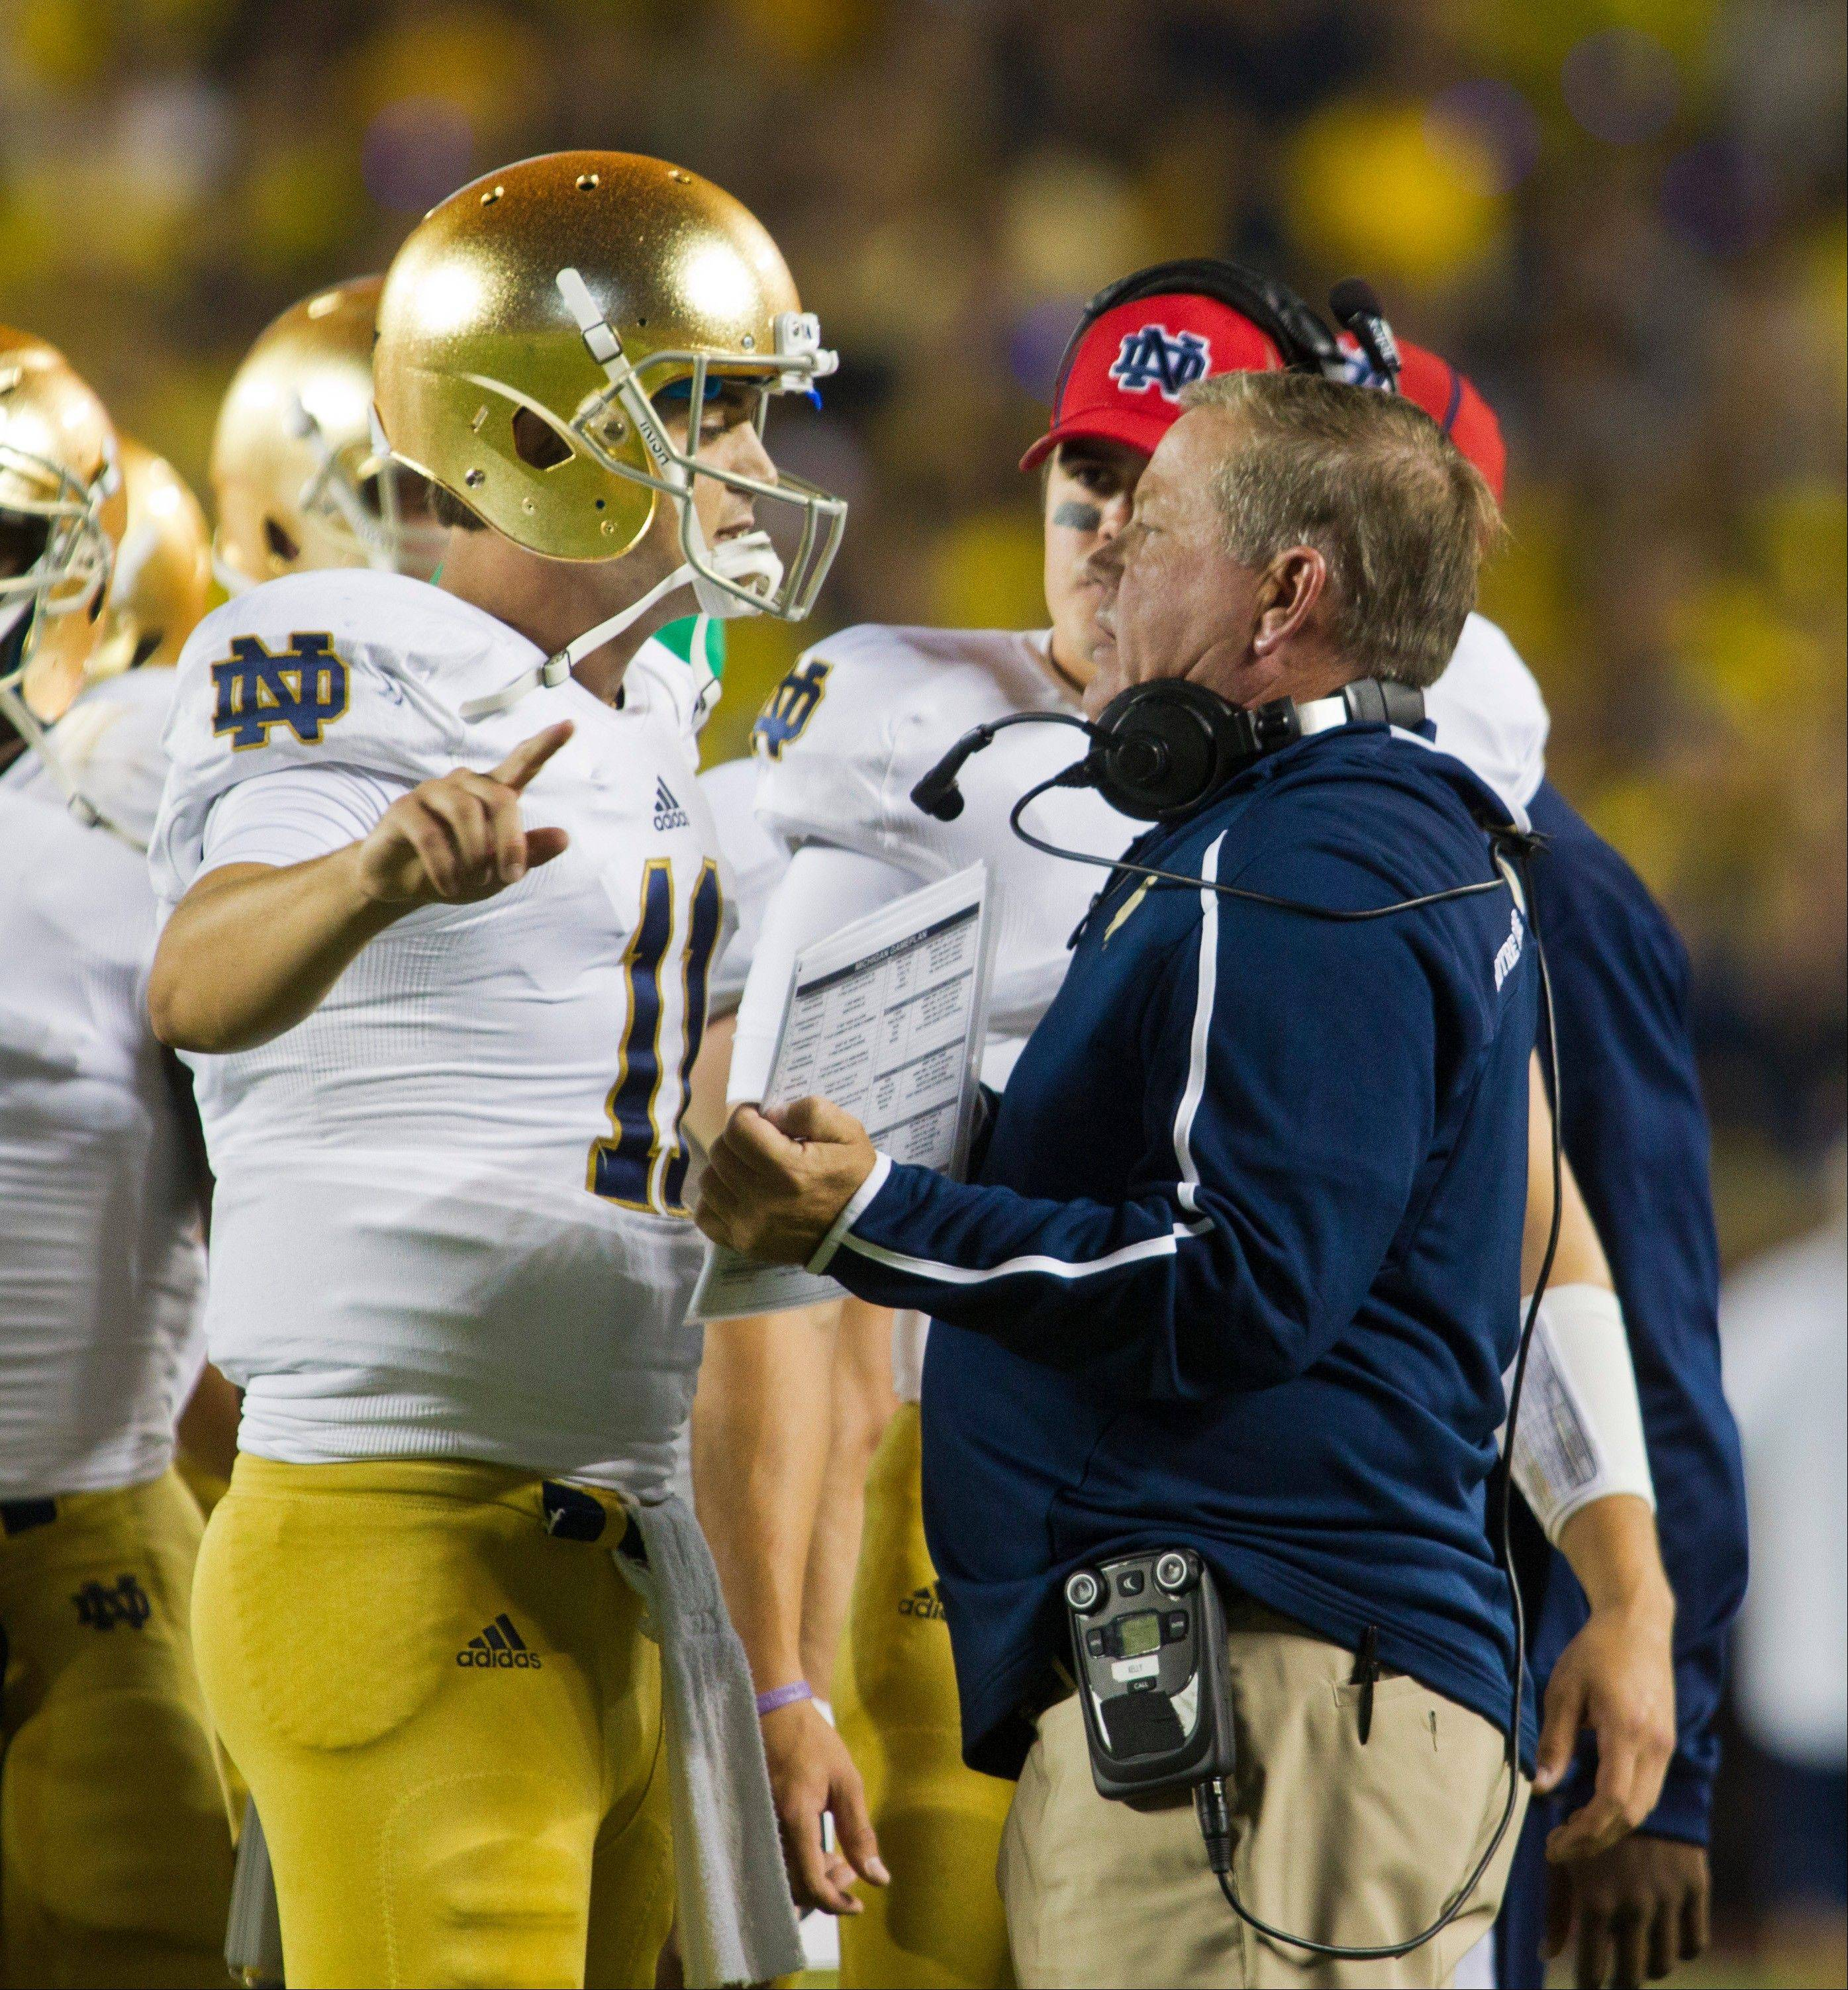 Notre Dame quarterback Tommy Rees talks with head coach Brian Kelly on the sideline during Saturday's game in Ann Arbor, Mich. The Irish threw 12 times in the 13 plays they had in the red zone during the loss to the Wolverines.